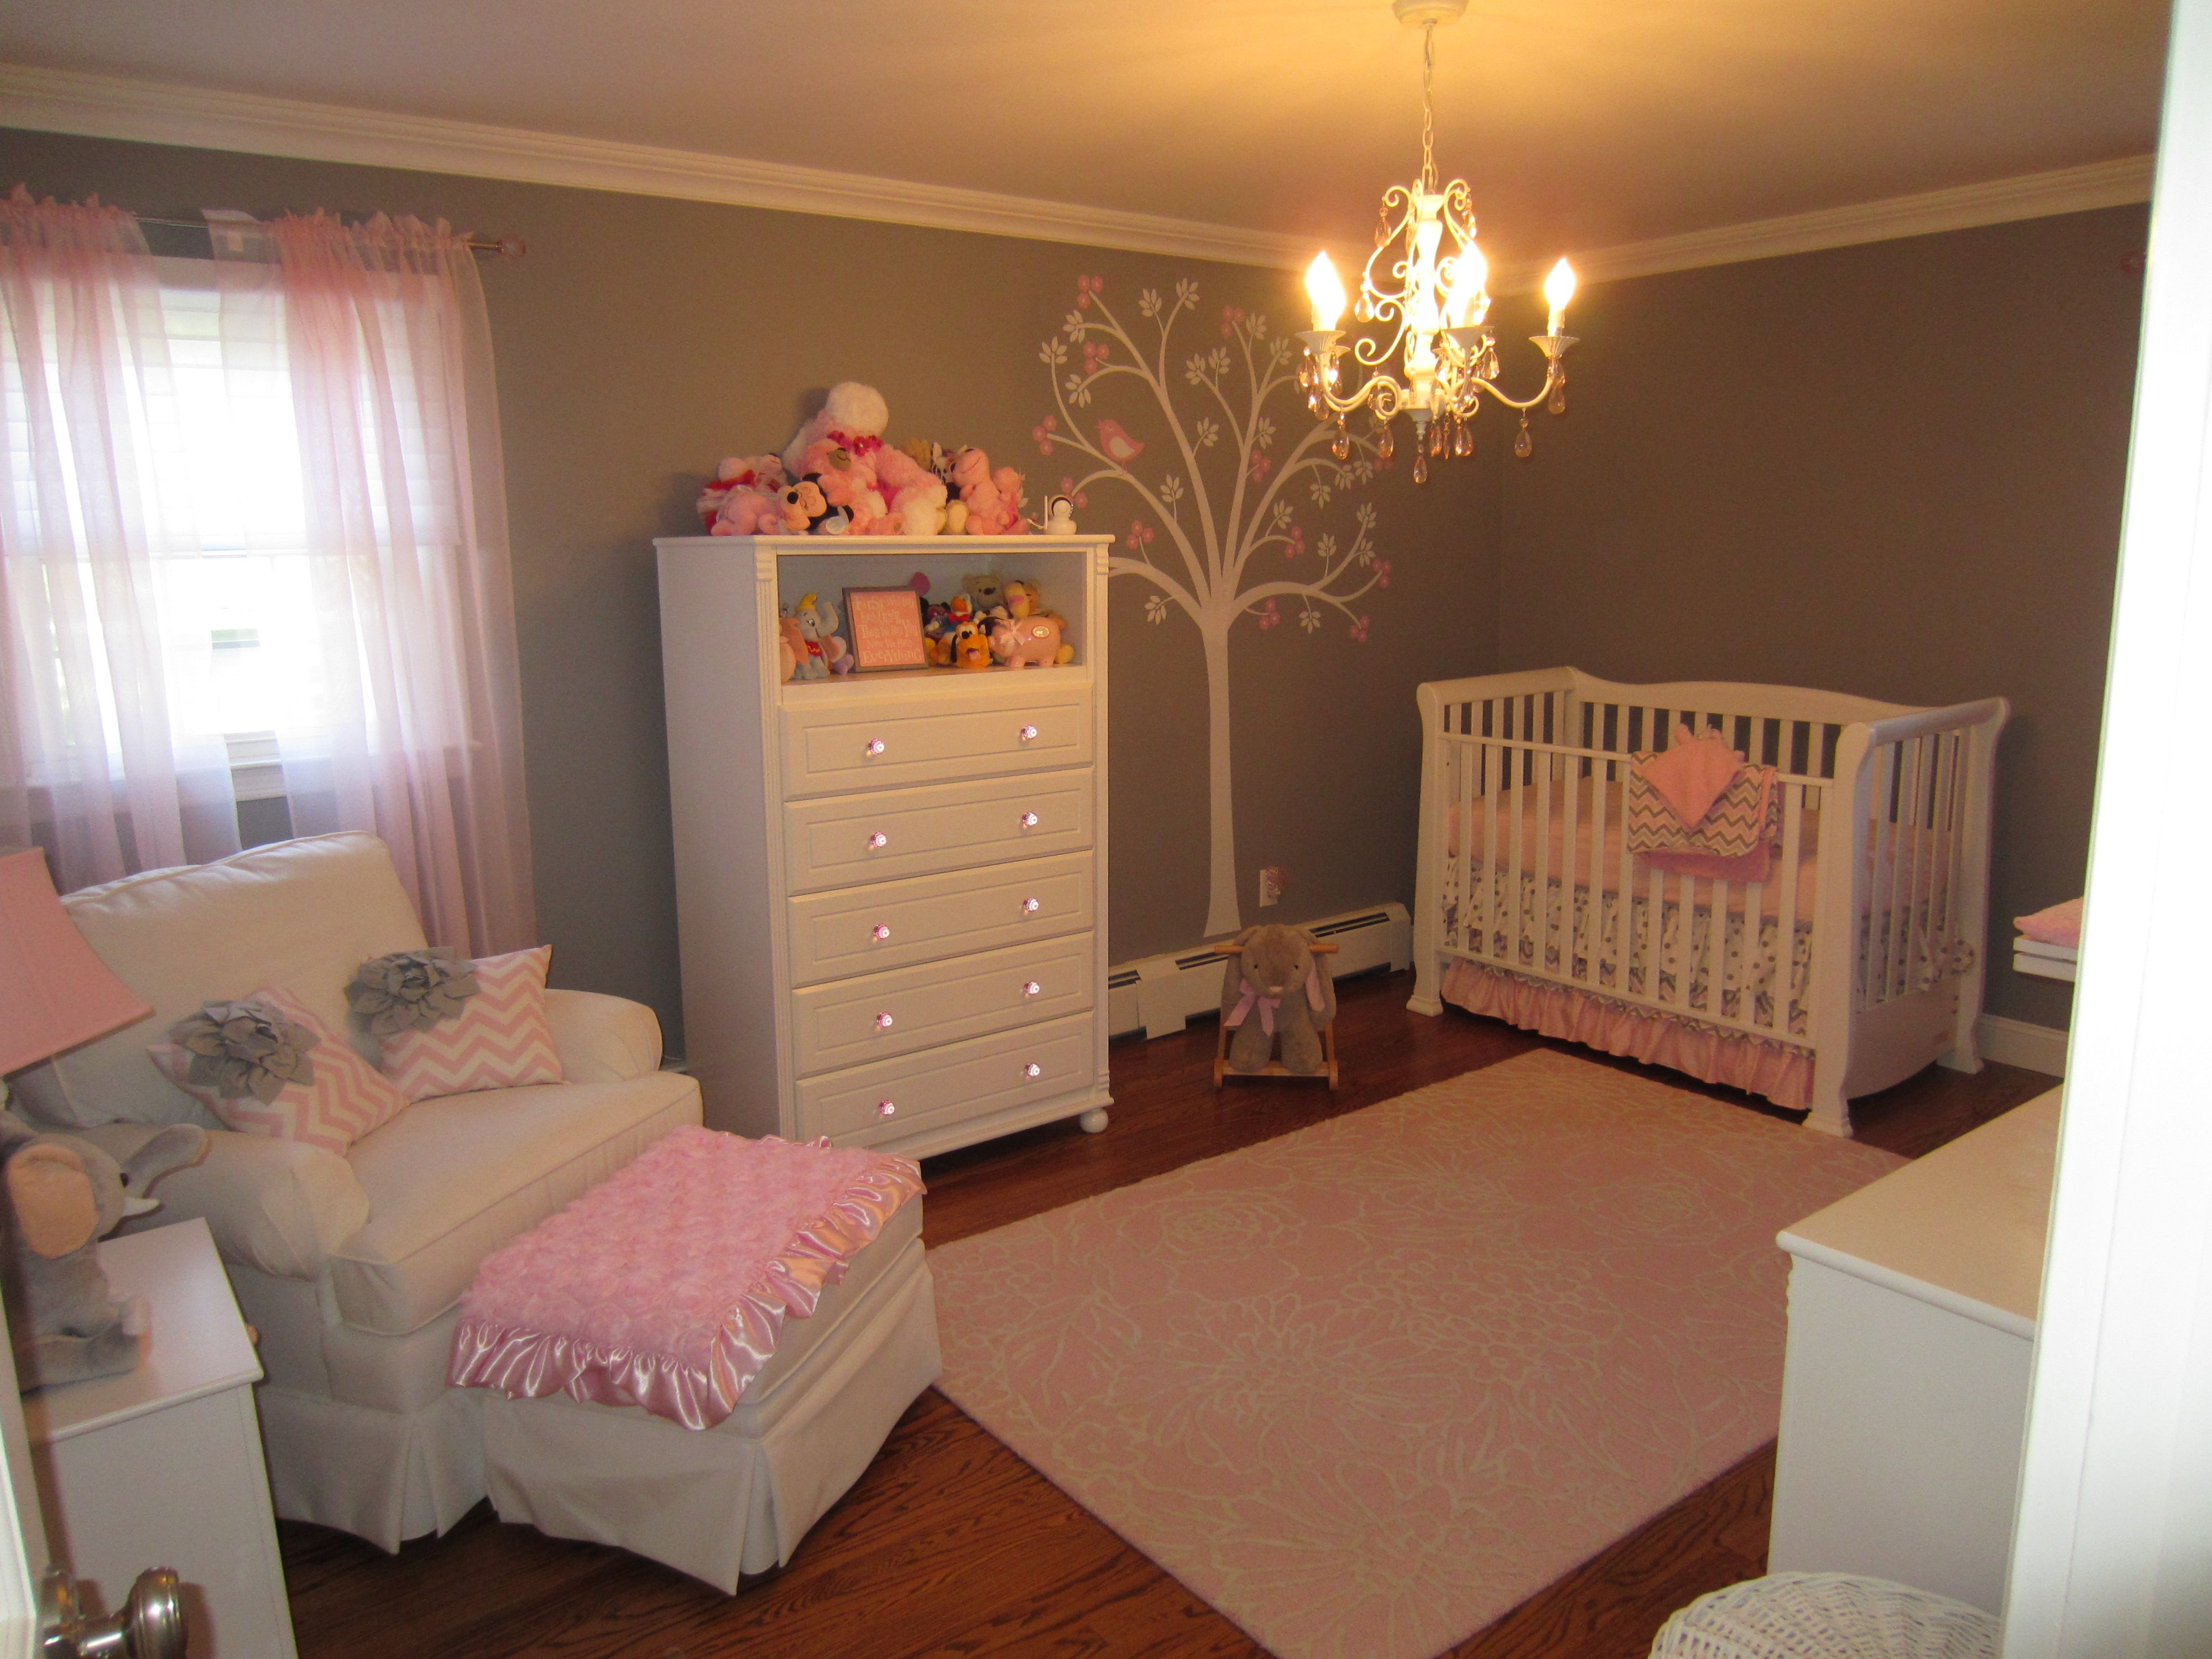 Soft pink and gray painted walls, ceiling, and floral tree